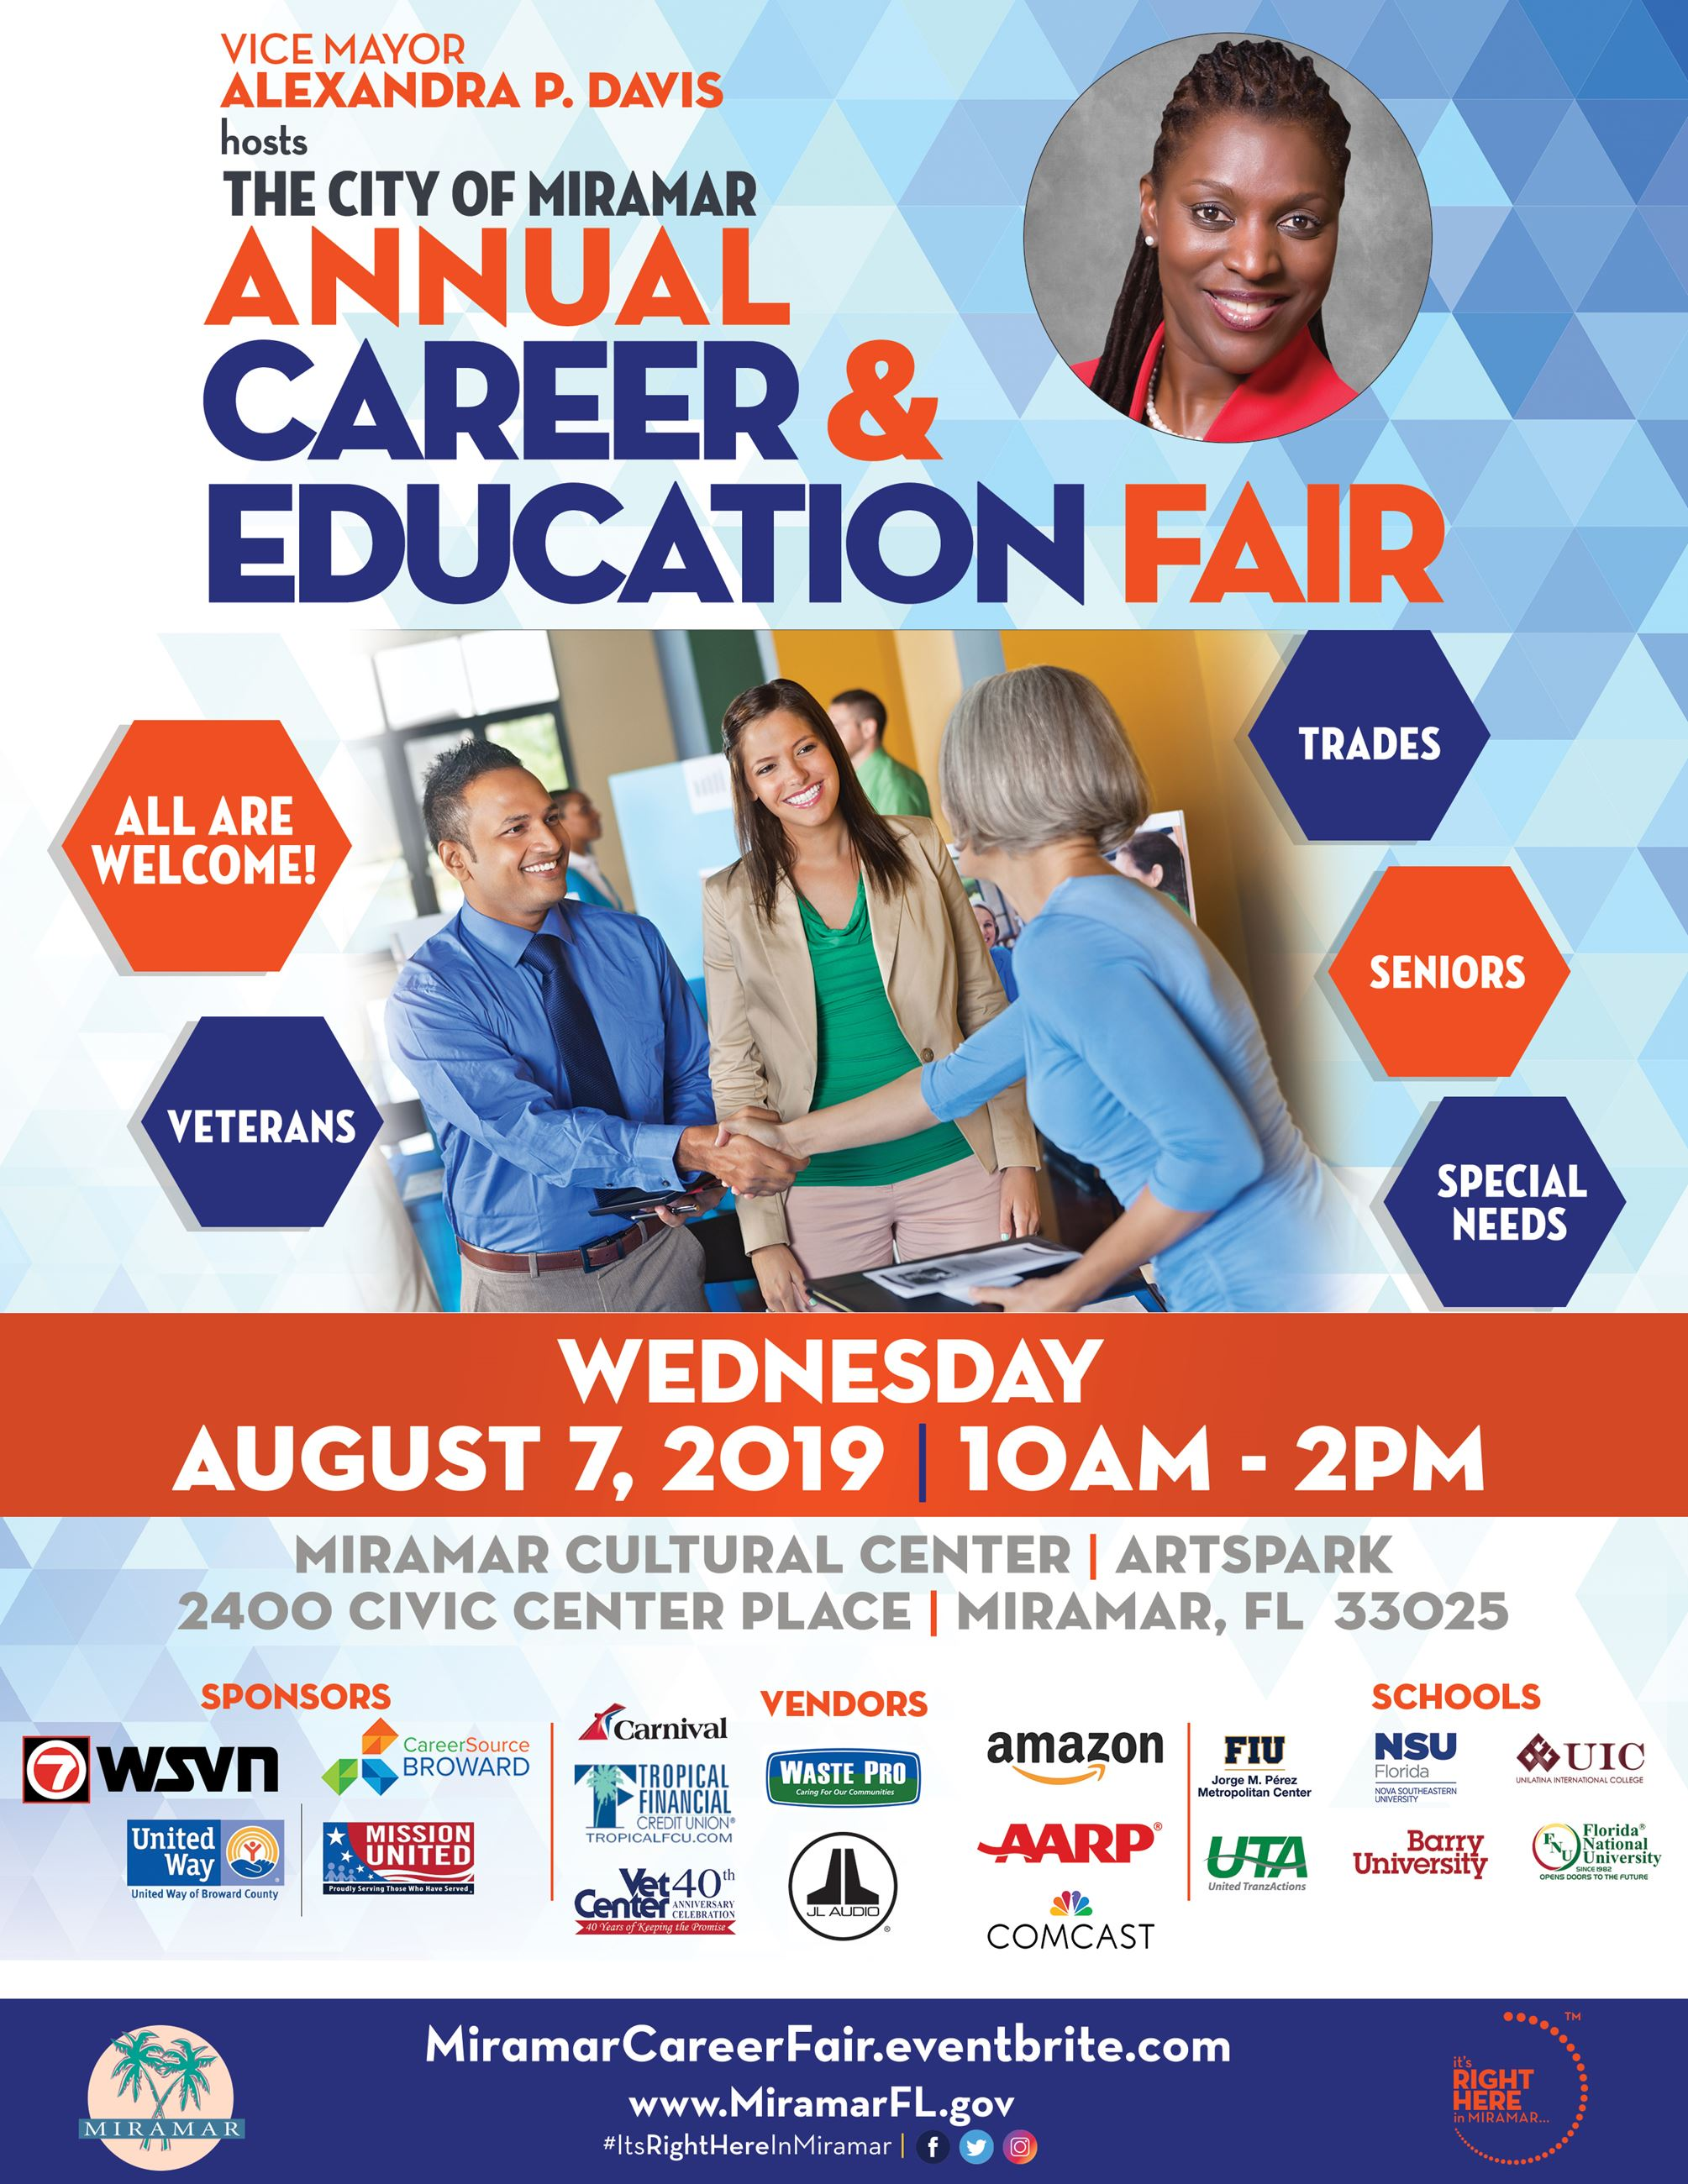 CoM_8.5x11_CareerFair2019_Flyer02